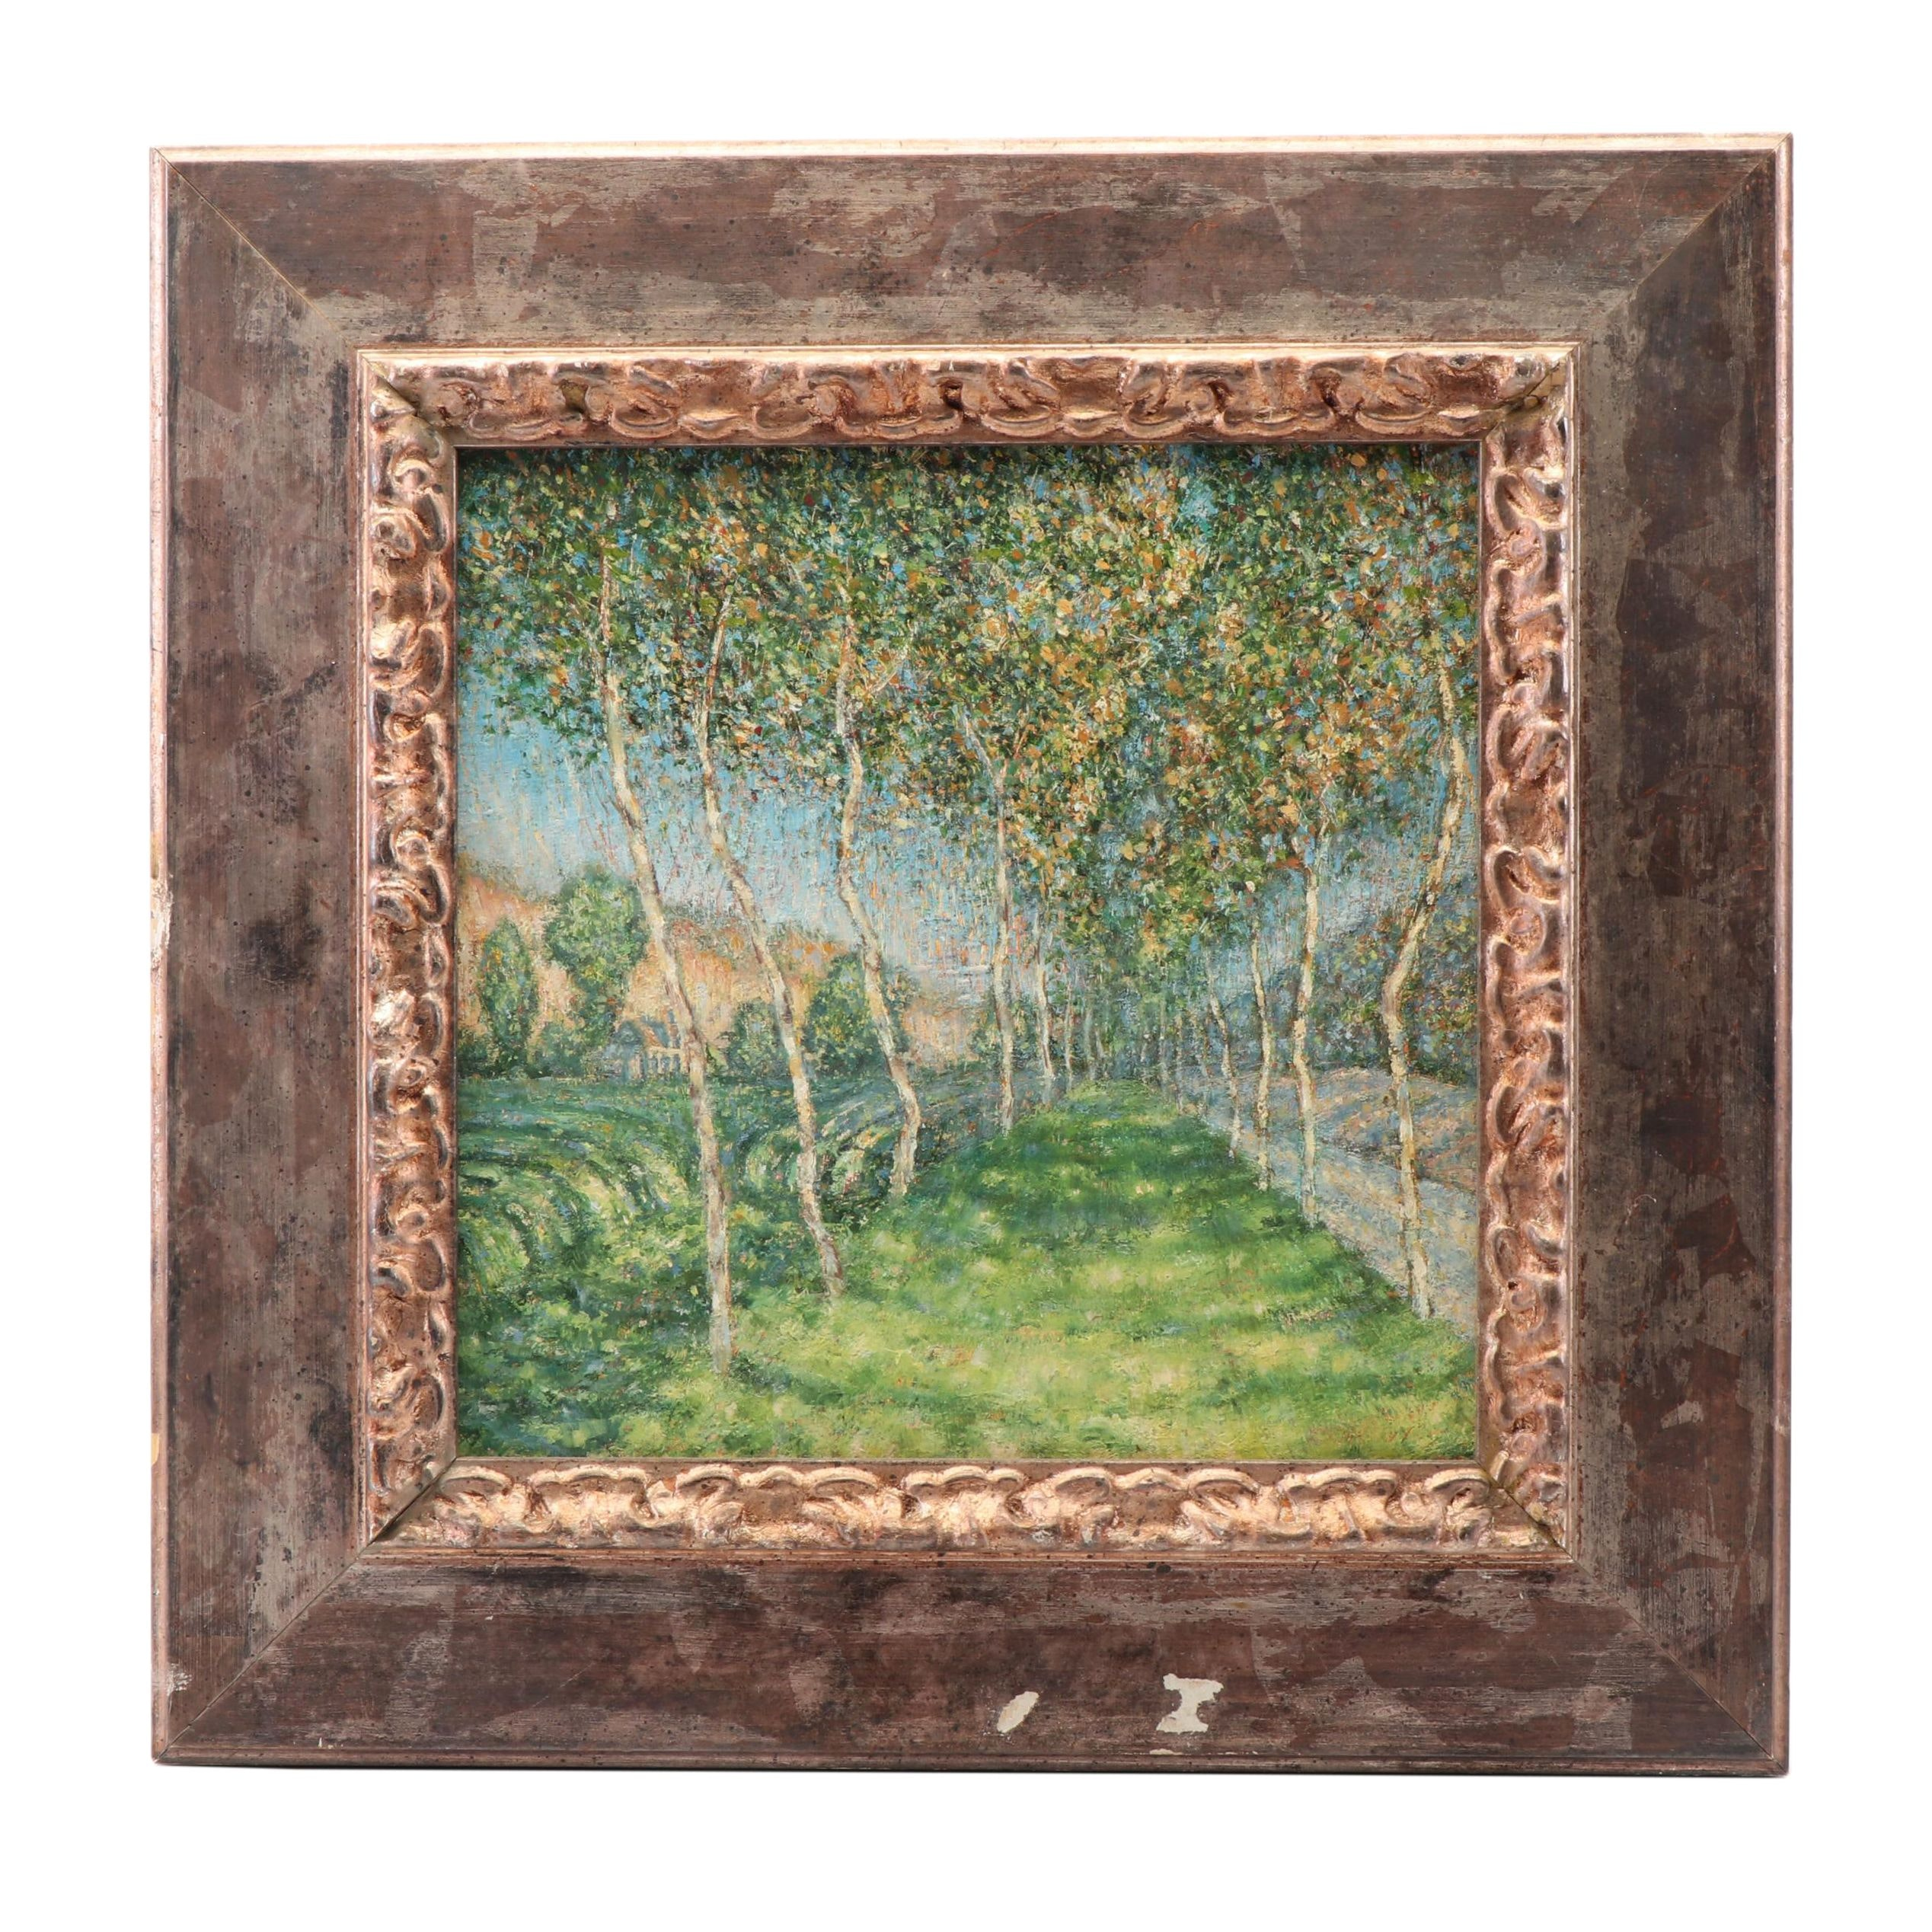 Impressionist Style Landscape Oil Painting